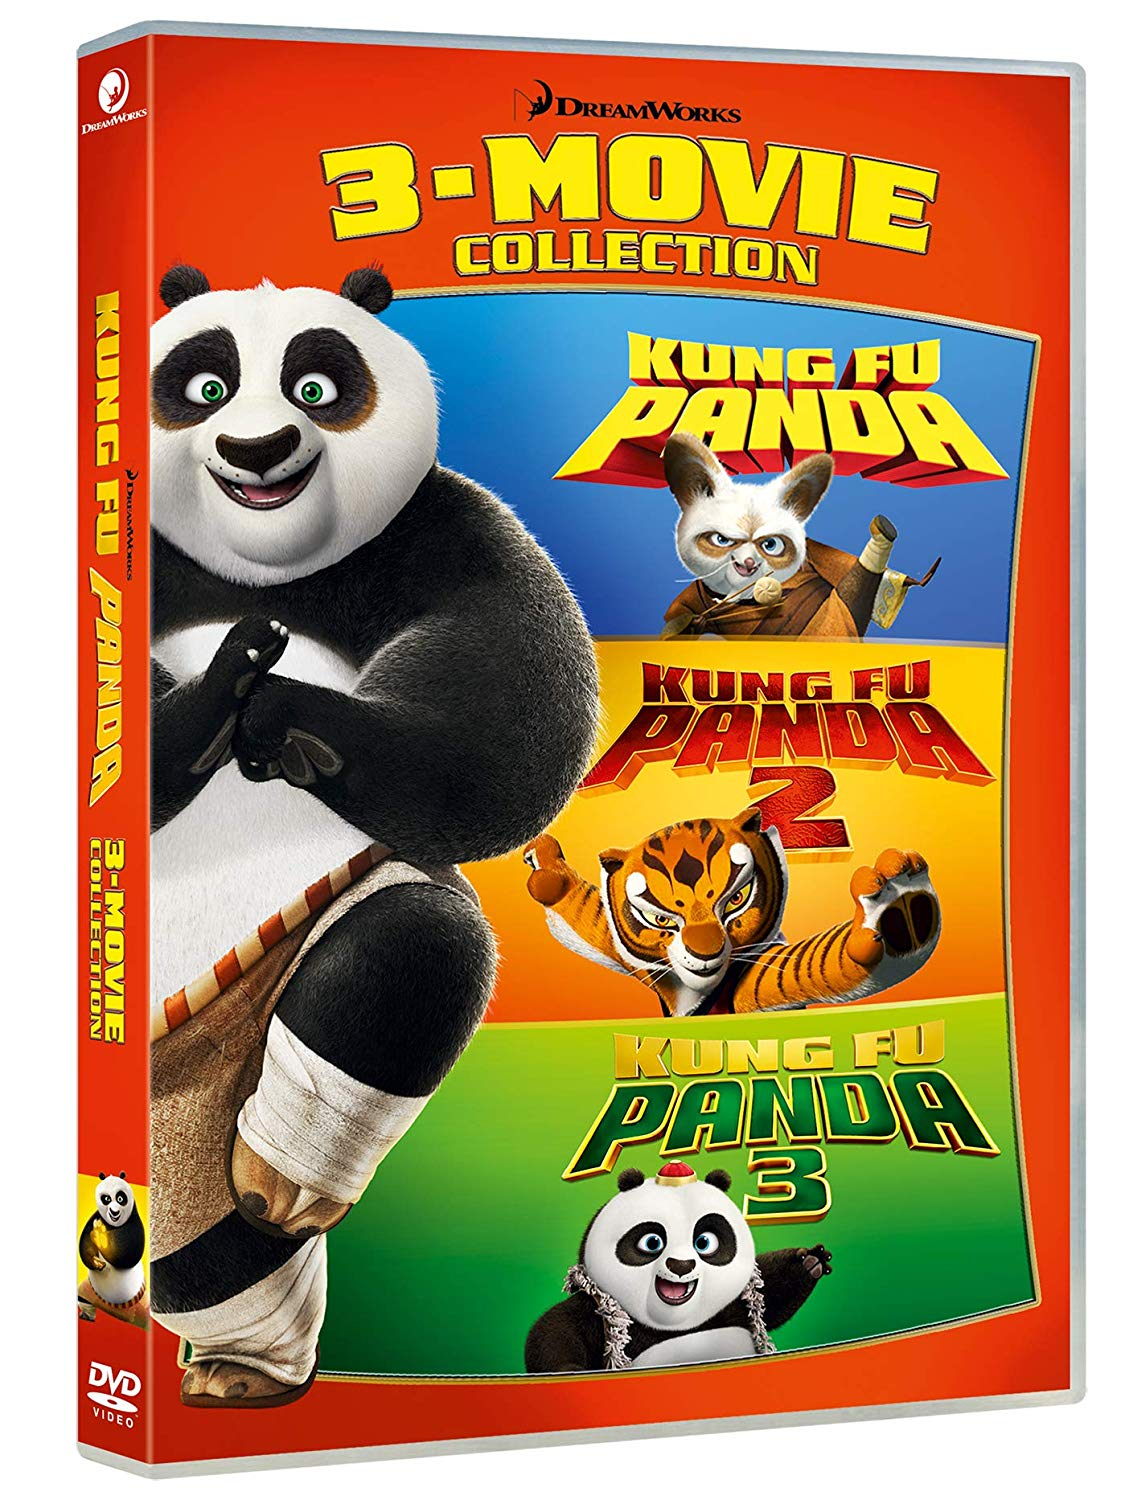 COF.KUNG FU PANDA 1-3 COLLECTION (3 DVD) (DVD)